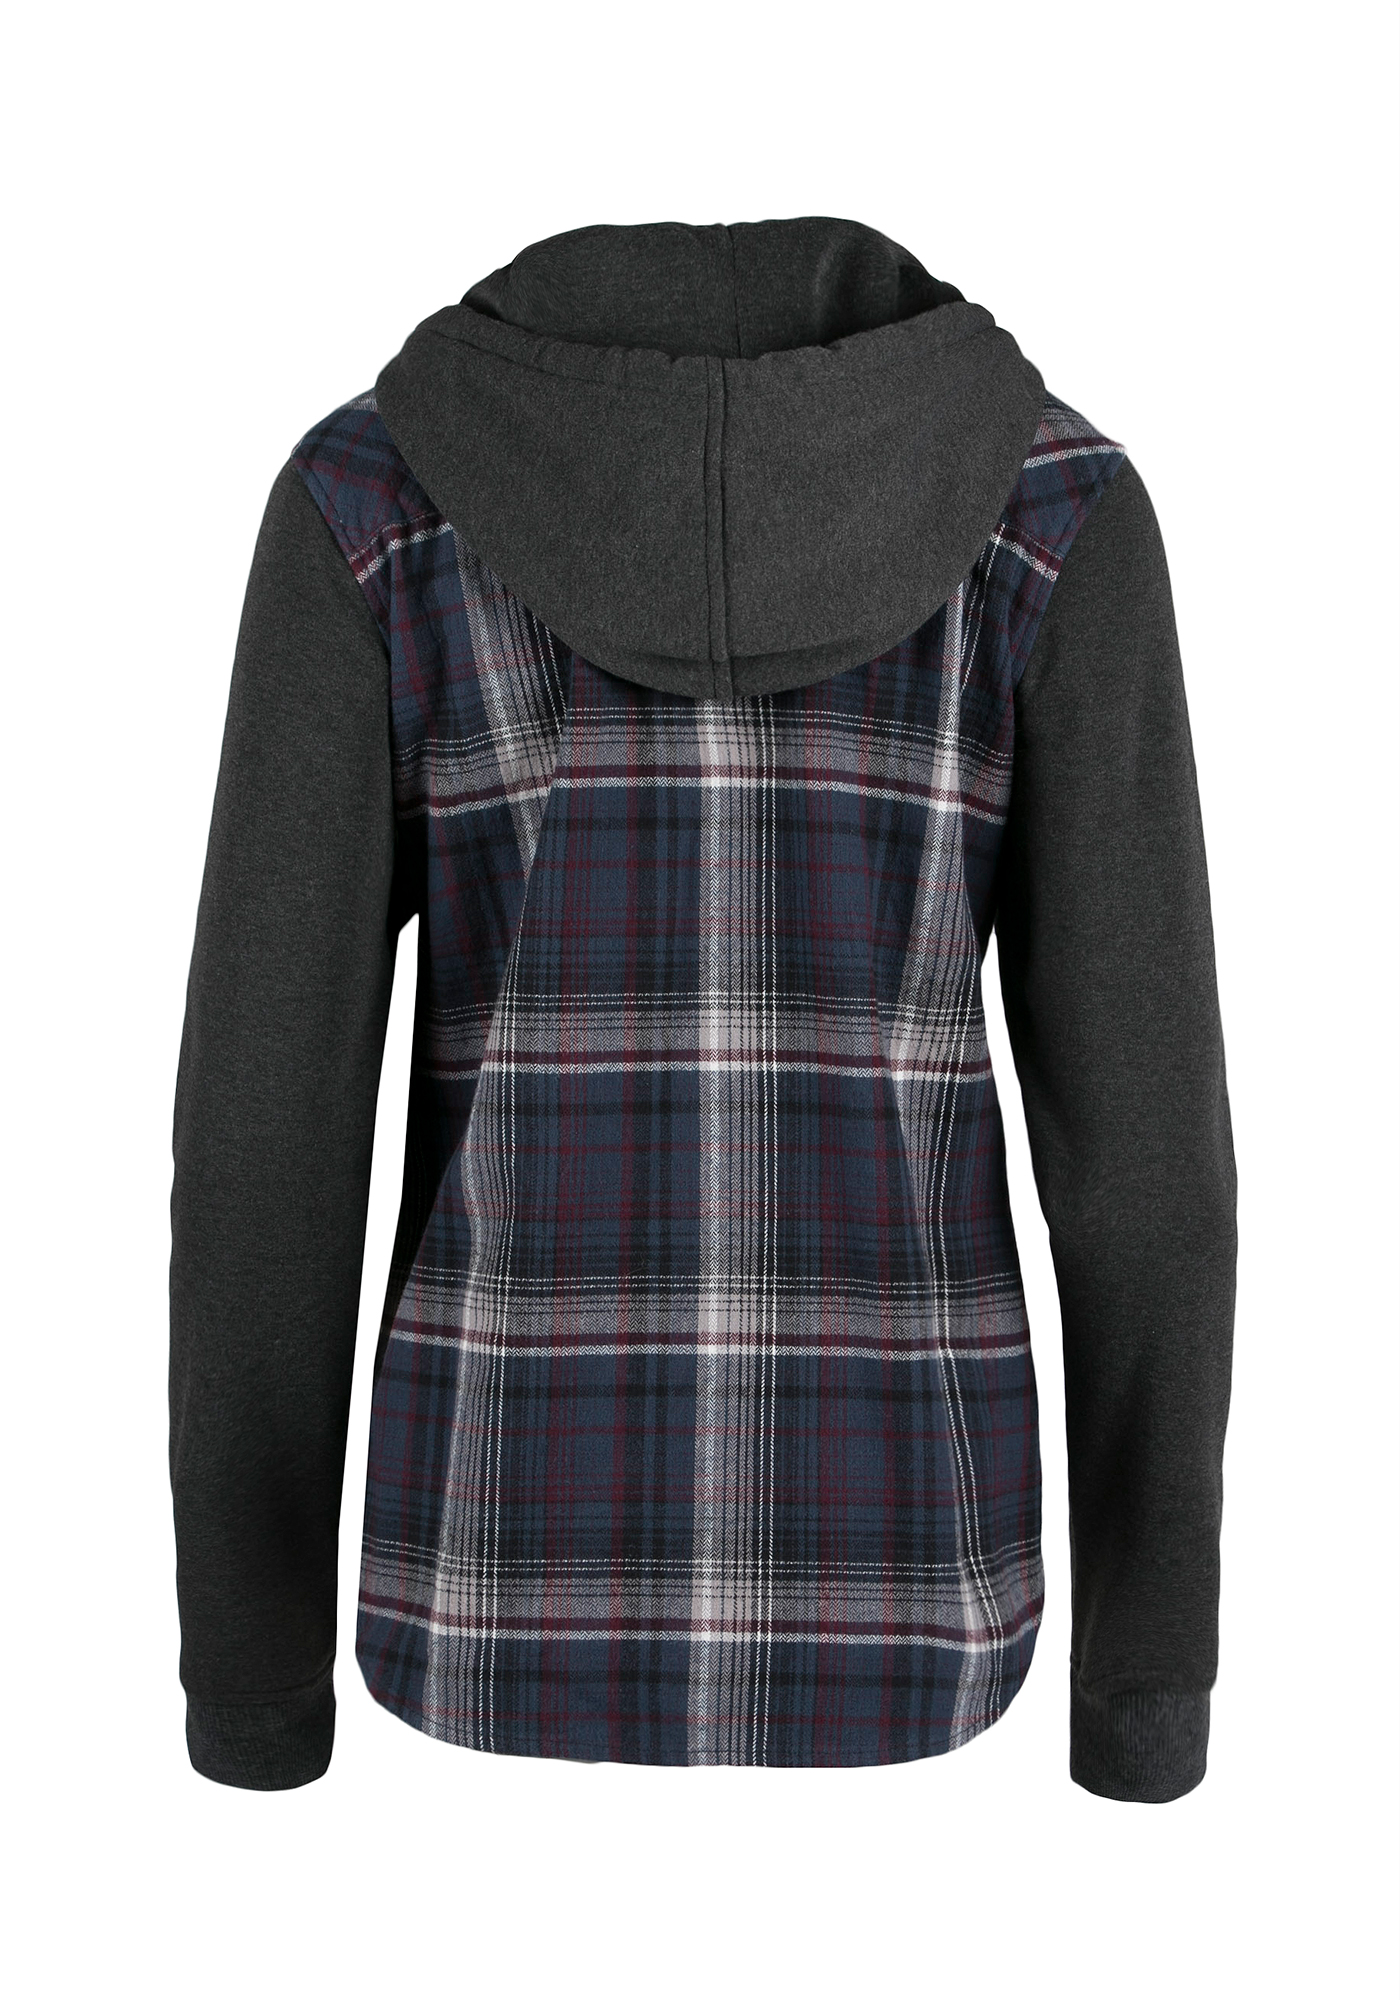 The Columbia Women's Times Two Hooded Shirt is going to be your new favorite garment to get dirty. Bring it camping for those chilly desert evenings, on your favorite hike in the fall or wear it for sitting around the fire in your backyard.4/5(4).